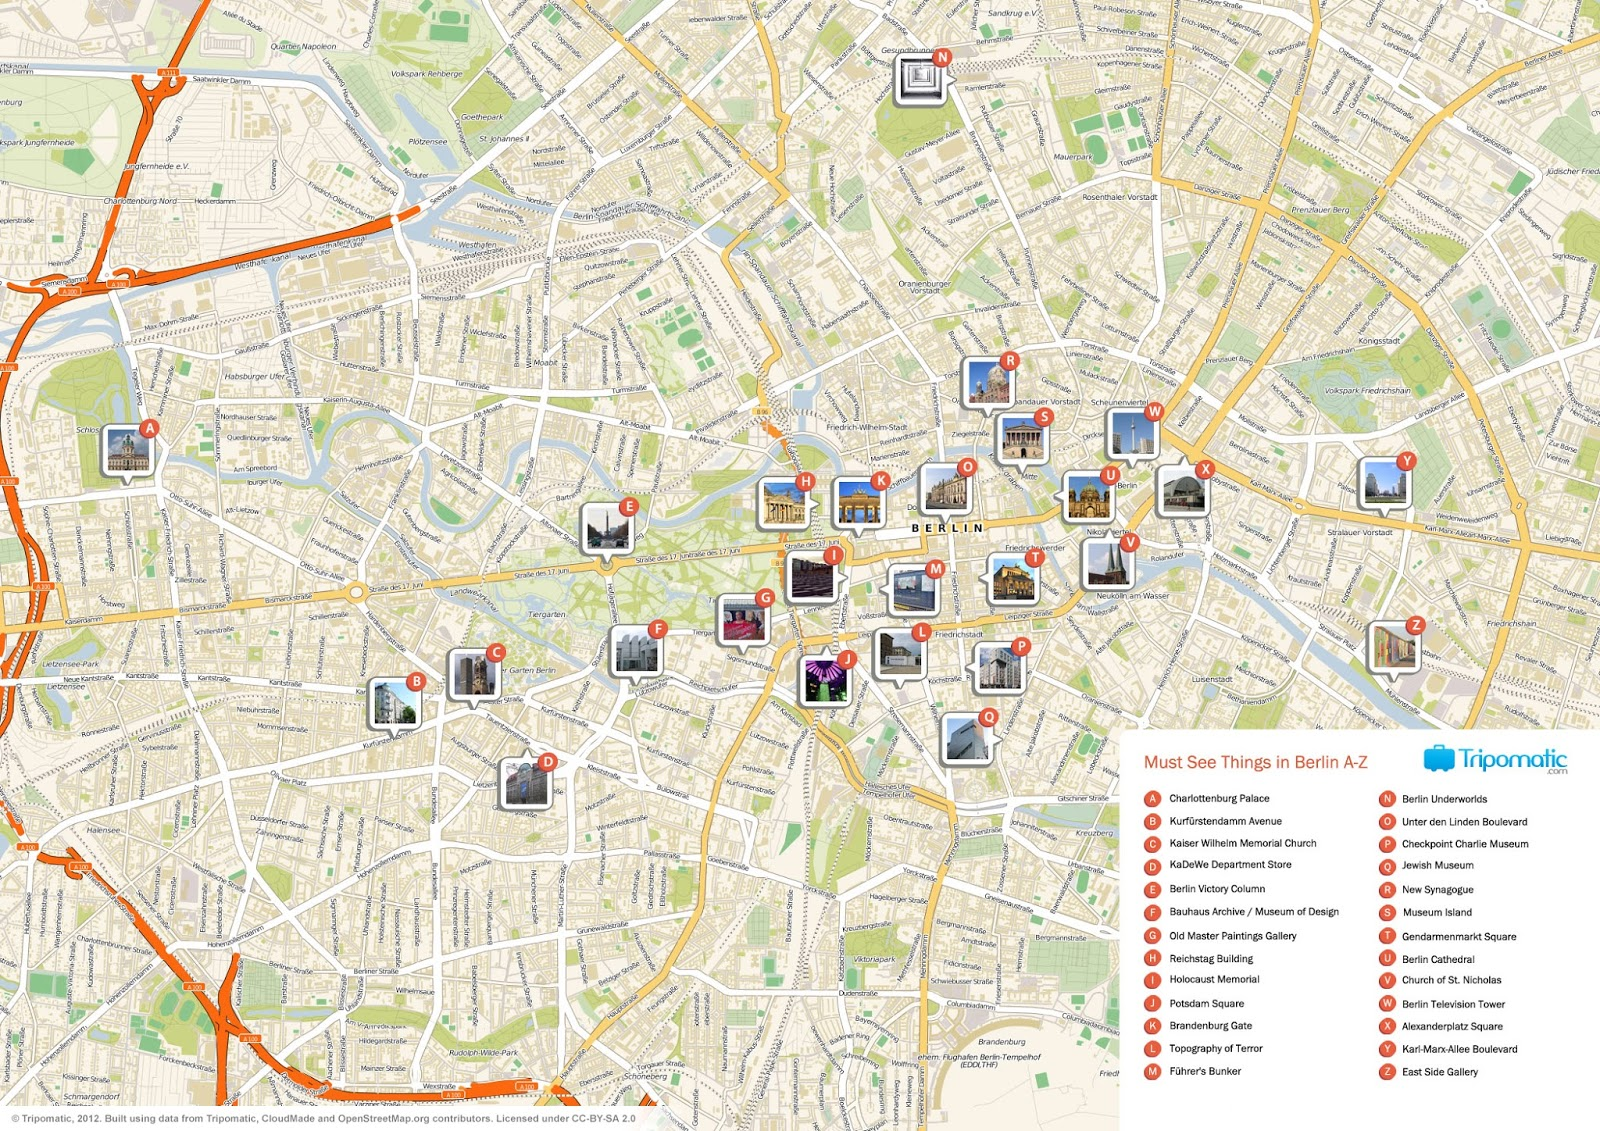 berlin-attractions-map-large tripomatic